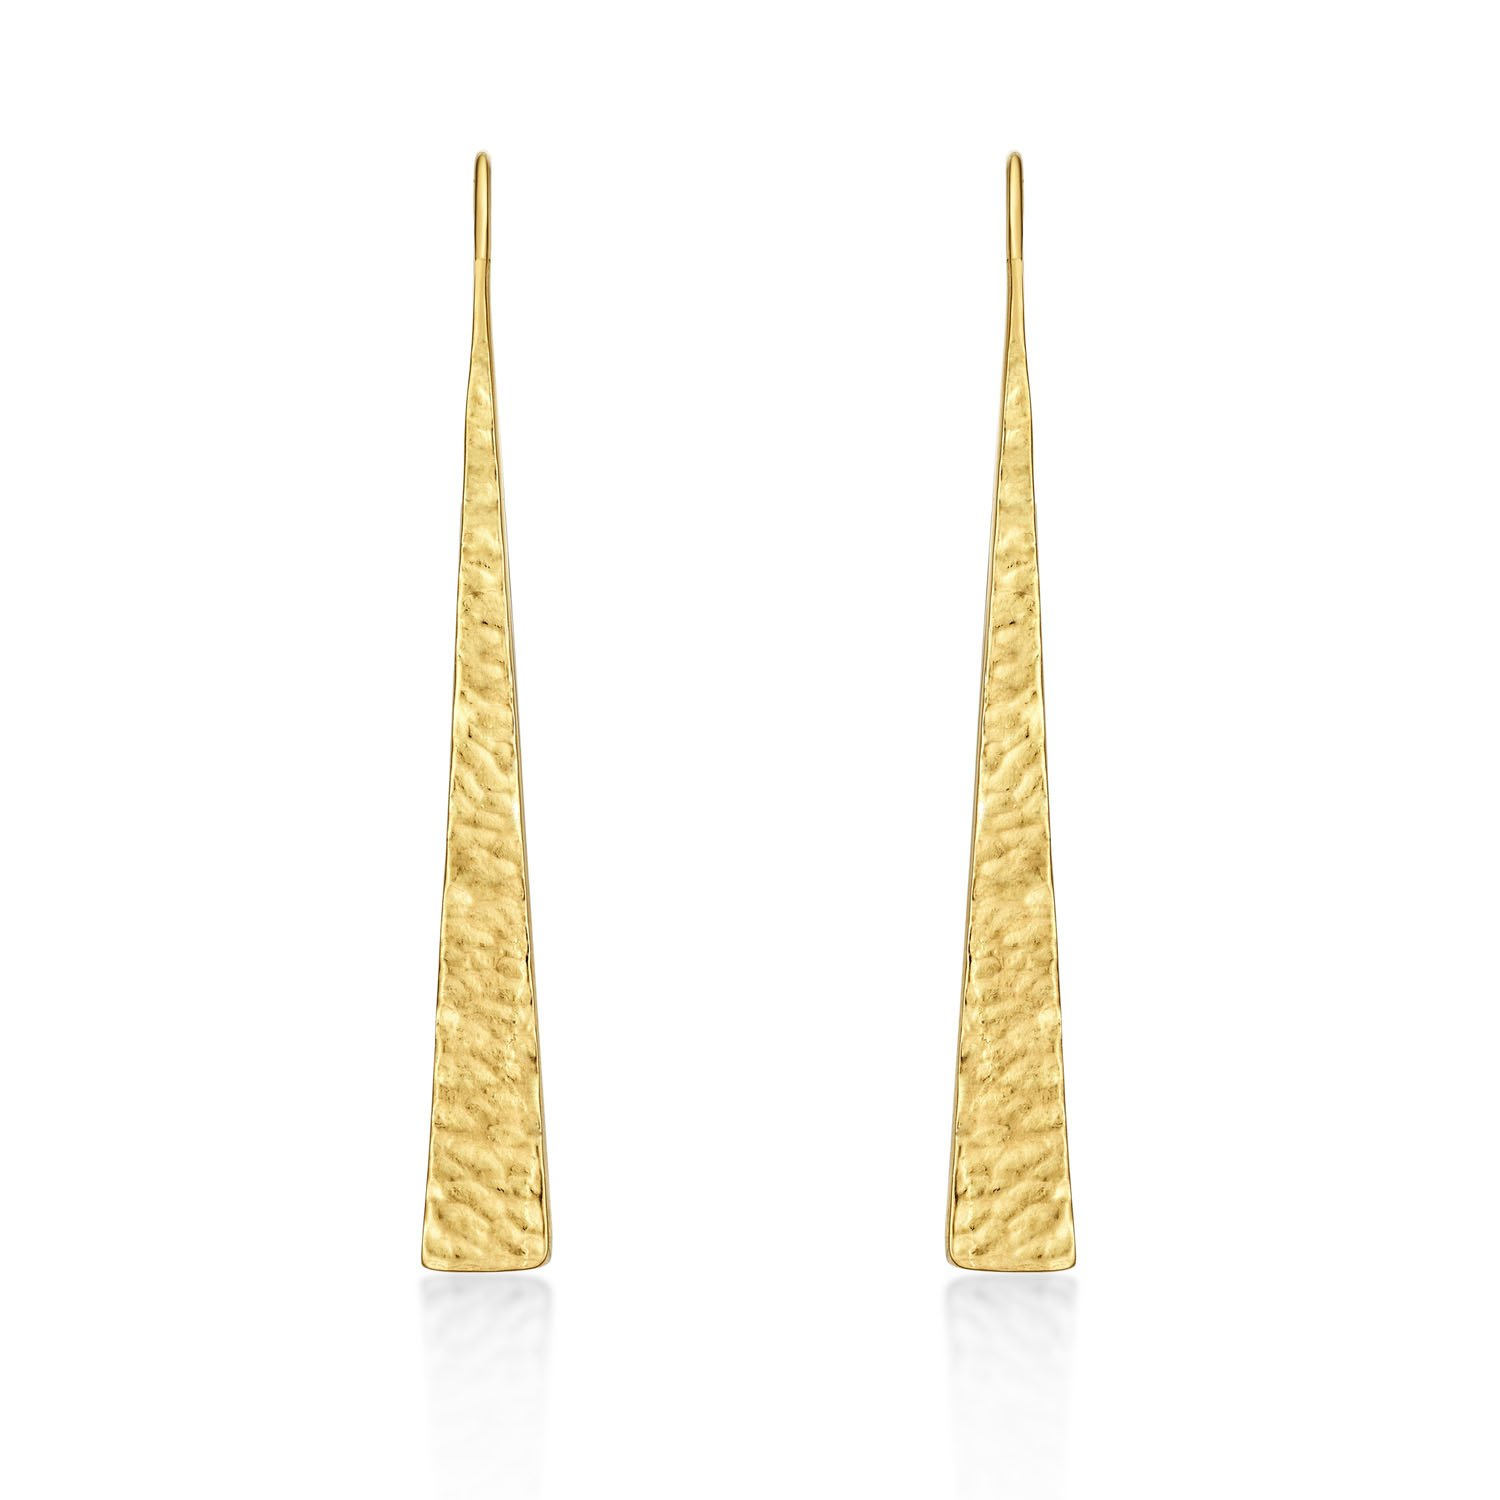 52bf6f853 Yellow Gold Modern Sterling Silver Drop Earrings plated in 18K Yellow Gold.  Hammered Design Contemporary Long Yellow Gold Earrings with Fishhook Backs.